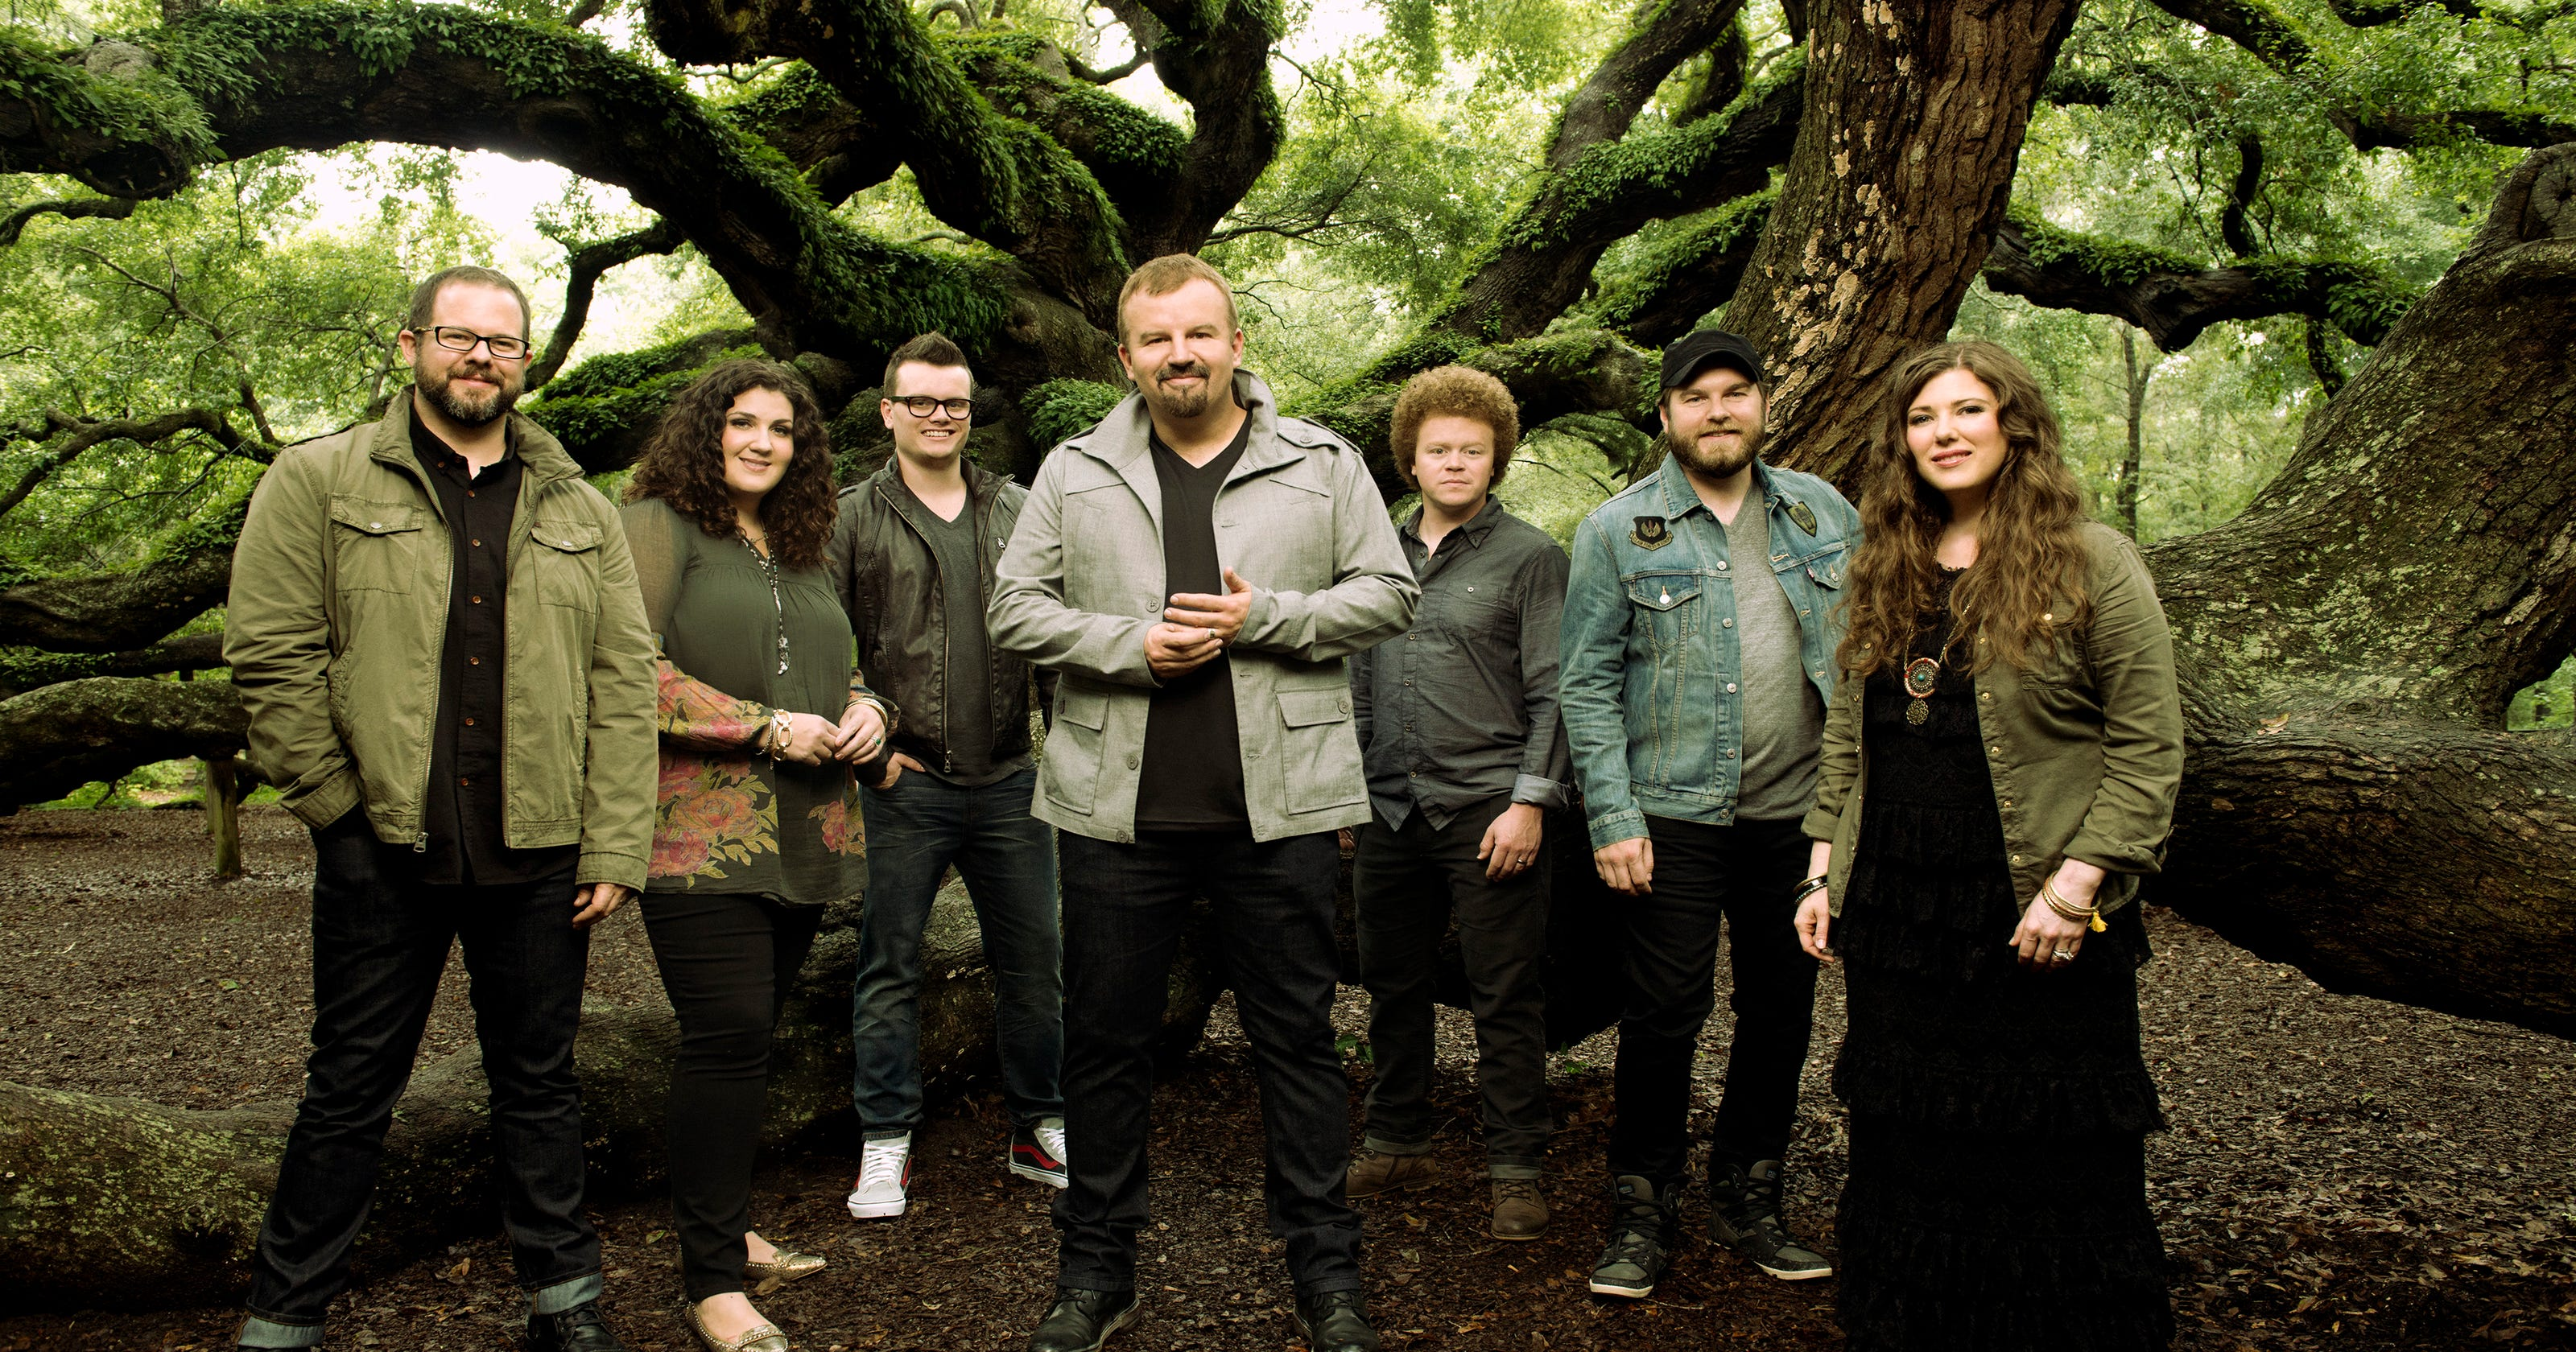 Casting Crowns brings Christian rock to Bridgestone